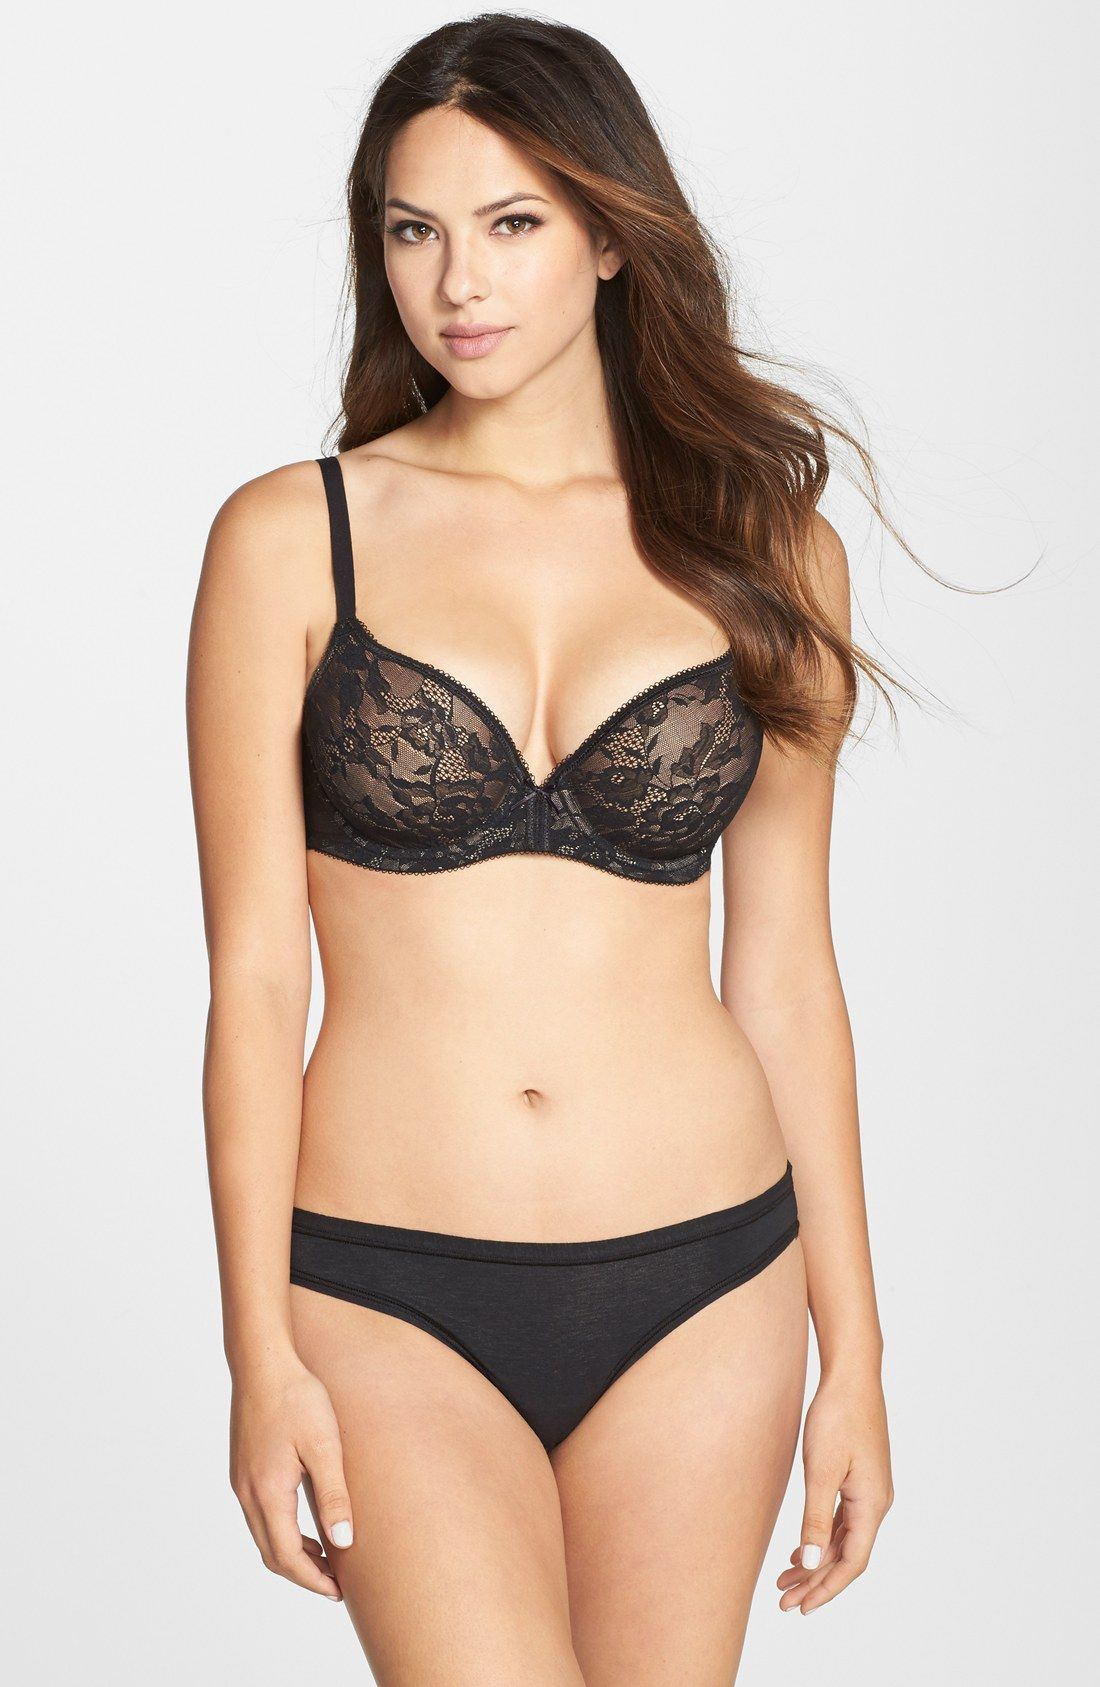 Finesse Molded Underwire T-Shirt Bra | Wacoal, Nordstrom and Black ...